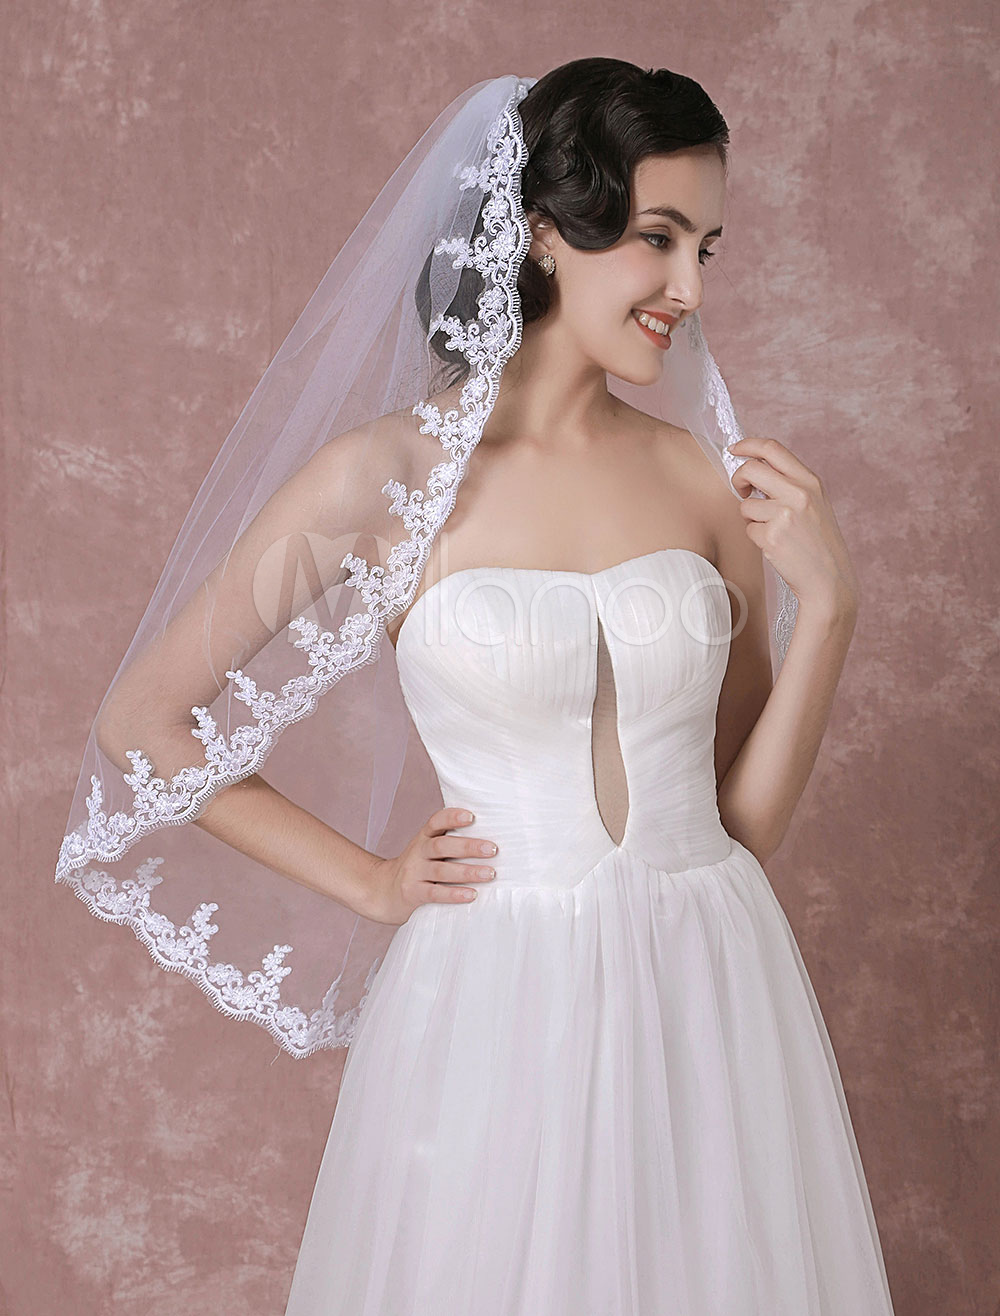 Buy Tulle Wedding Veil White One-Tier Lace Applique Edge Bridal Veil for $20.89 in Milanoo store